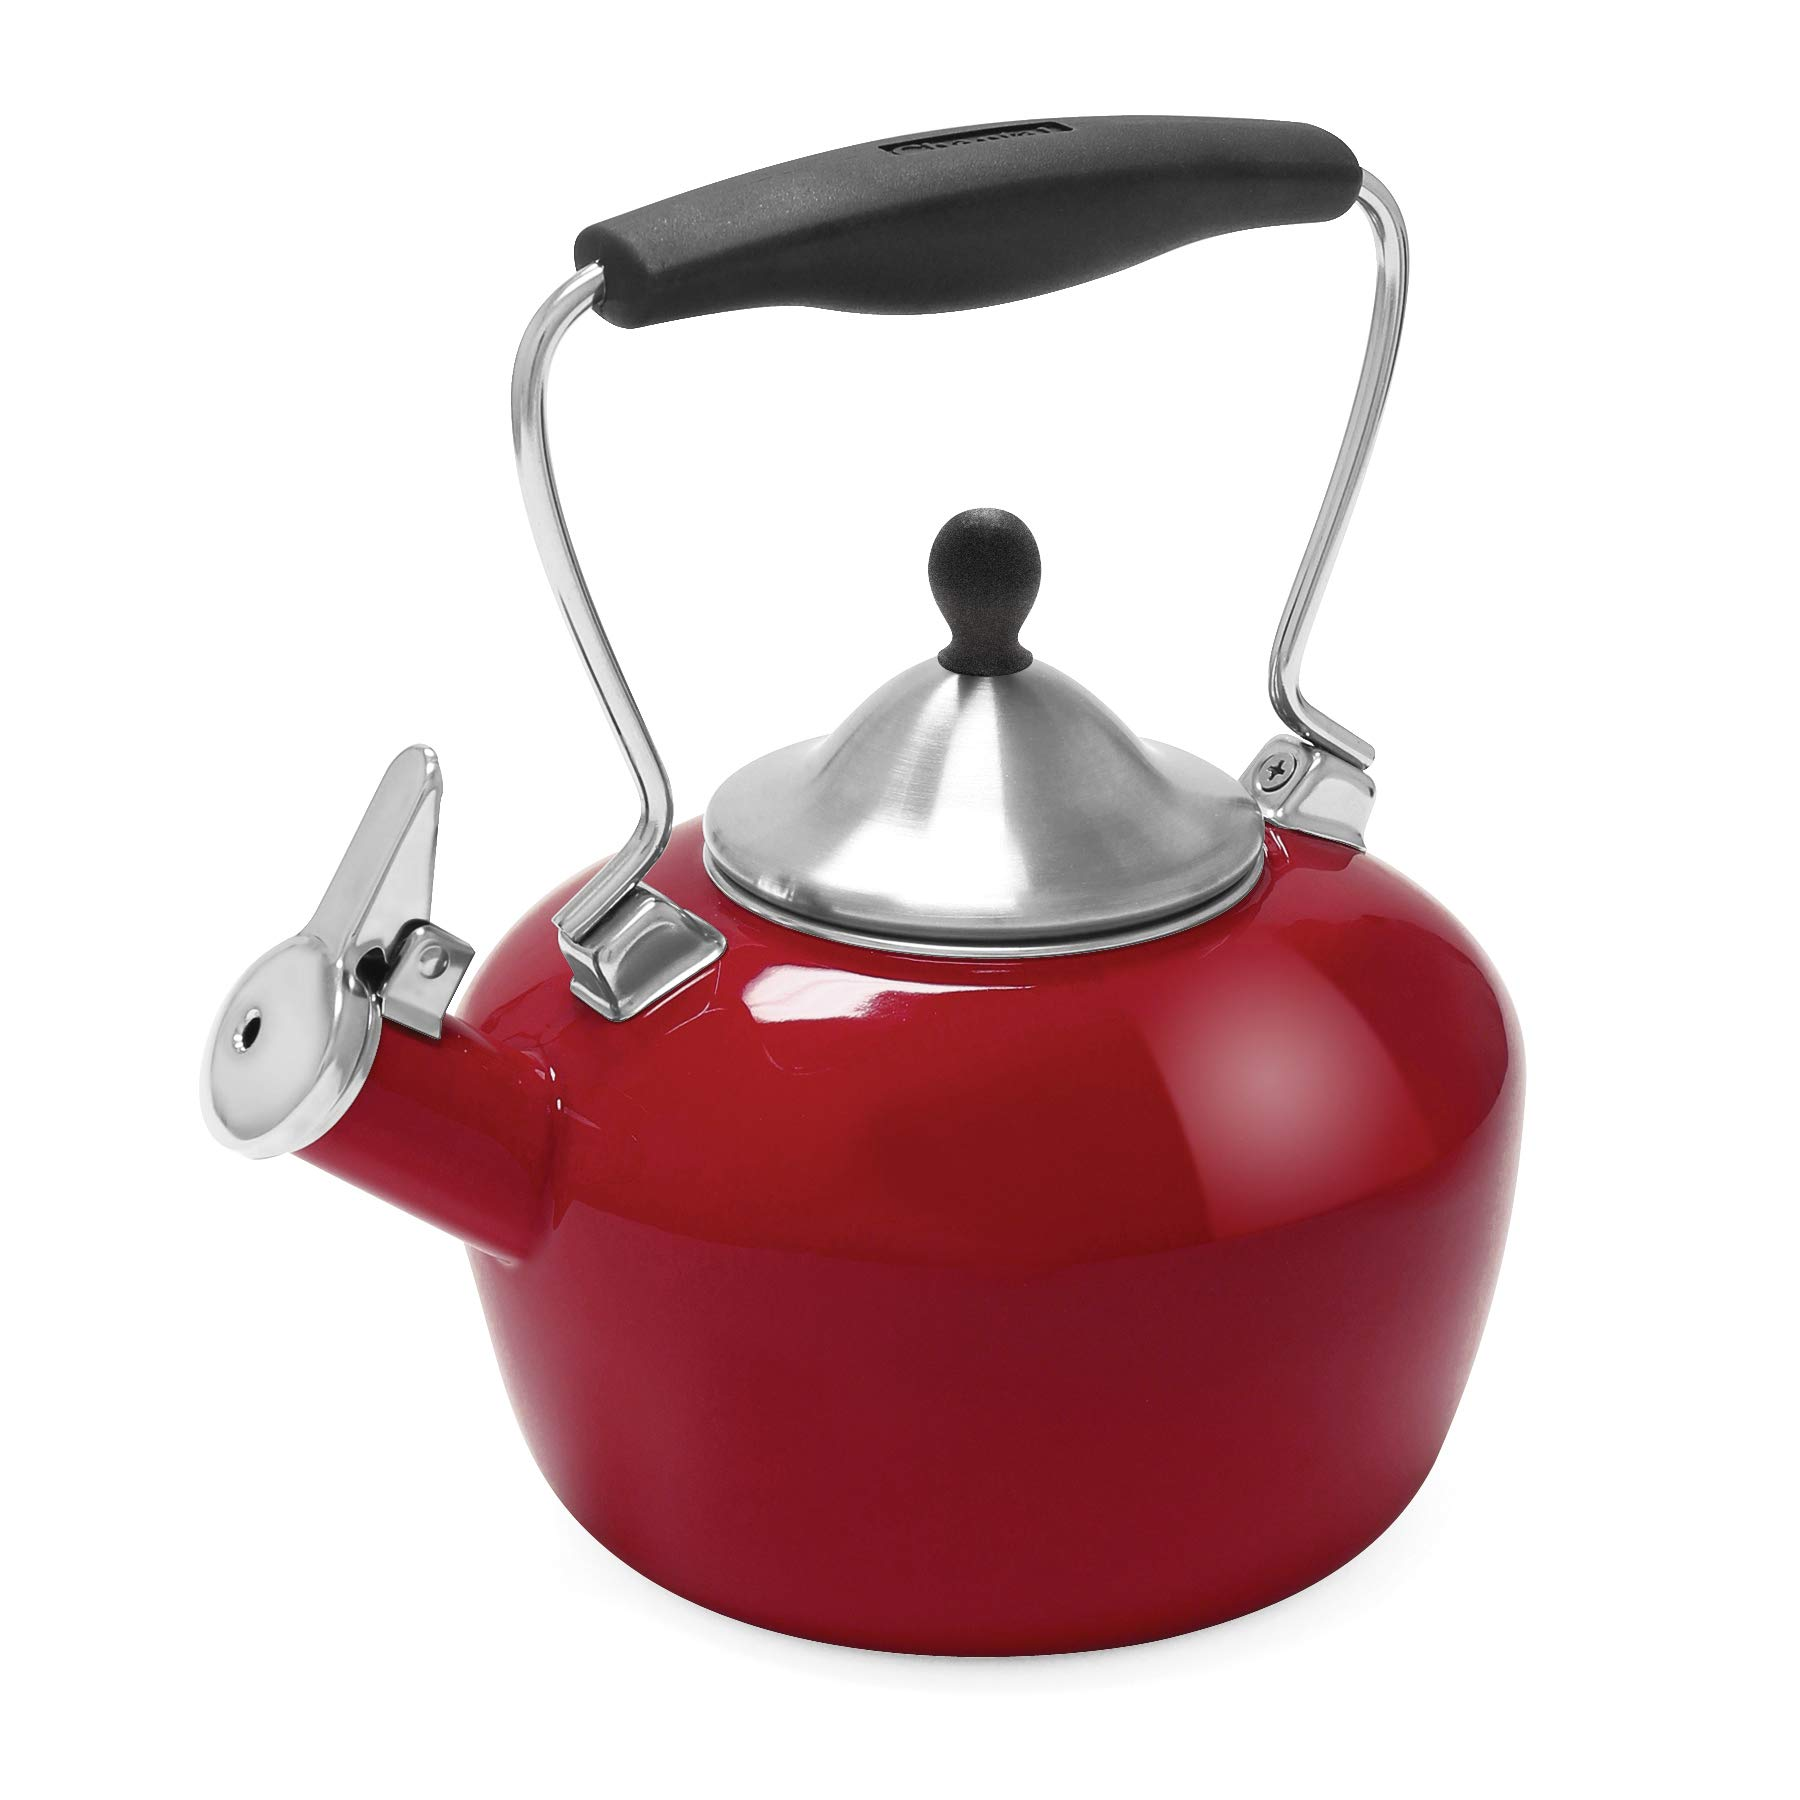 Chantal 37-CAT RA Catherine Teakettle, 1.8 quart, Apple Red